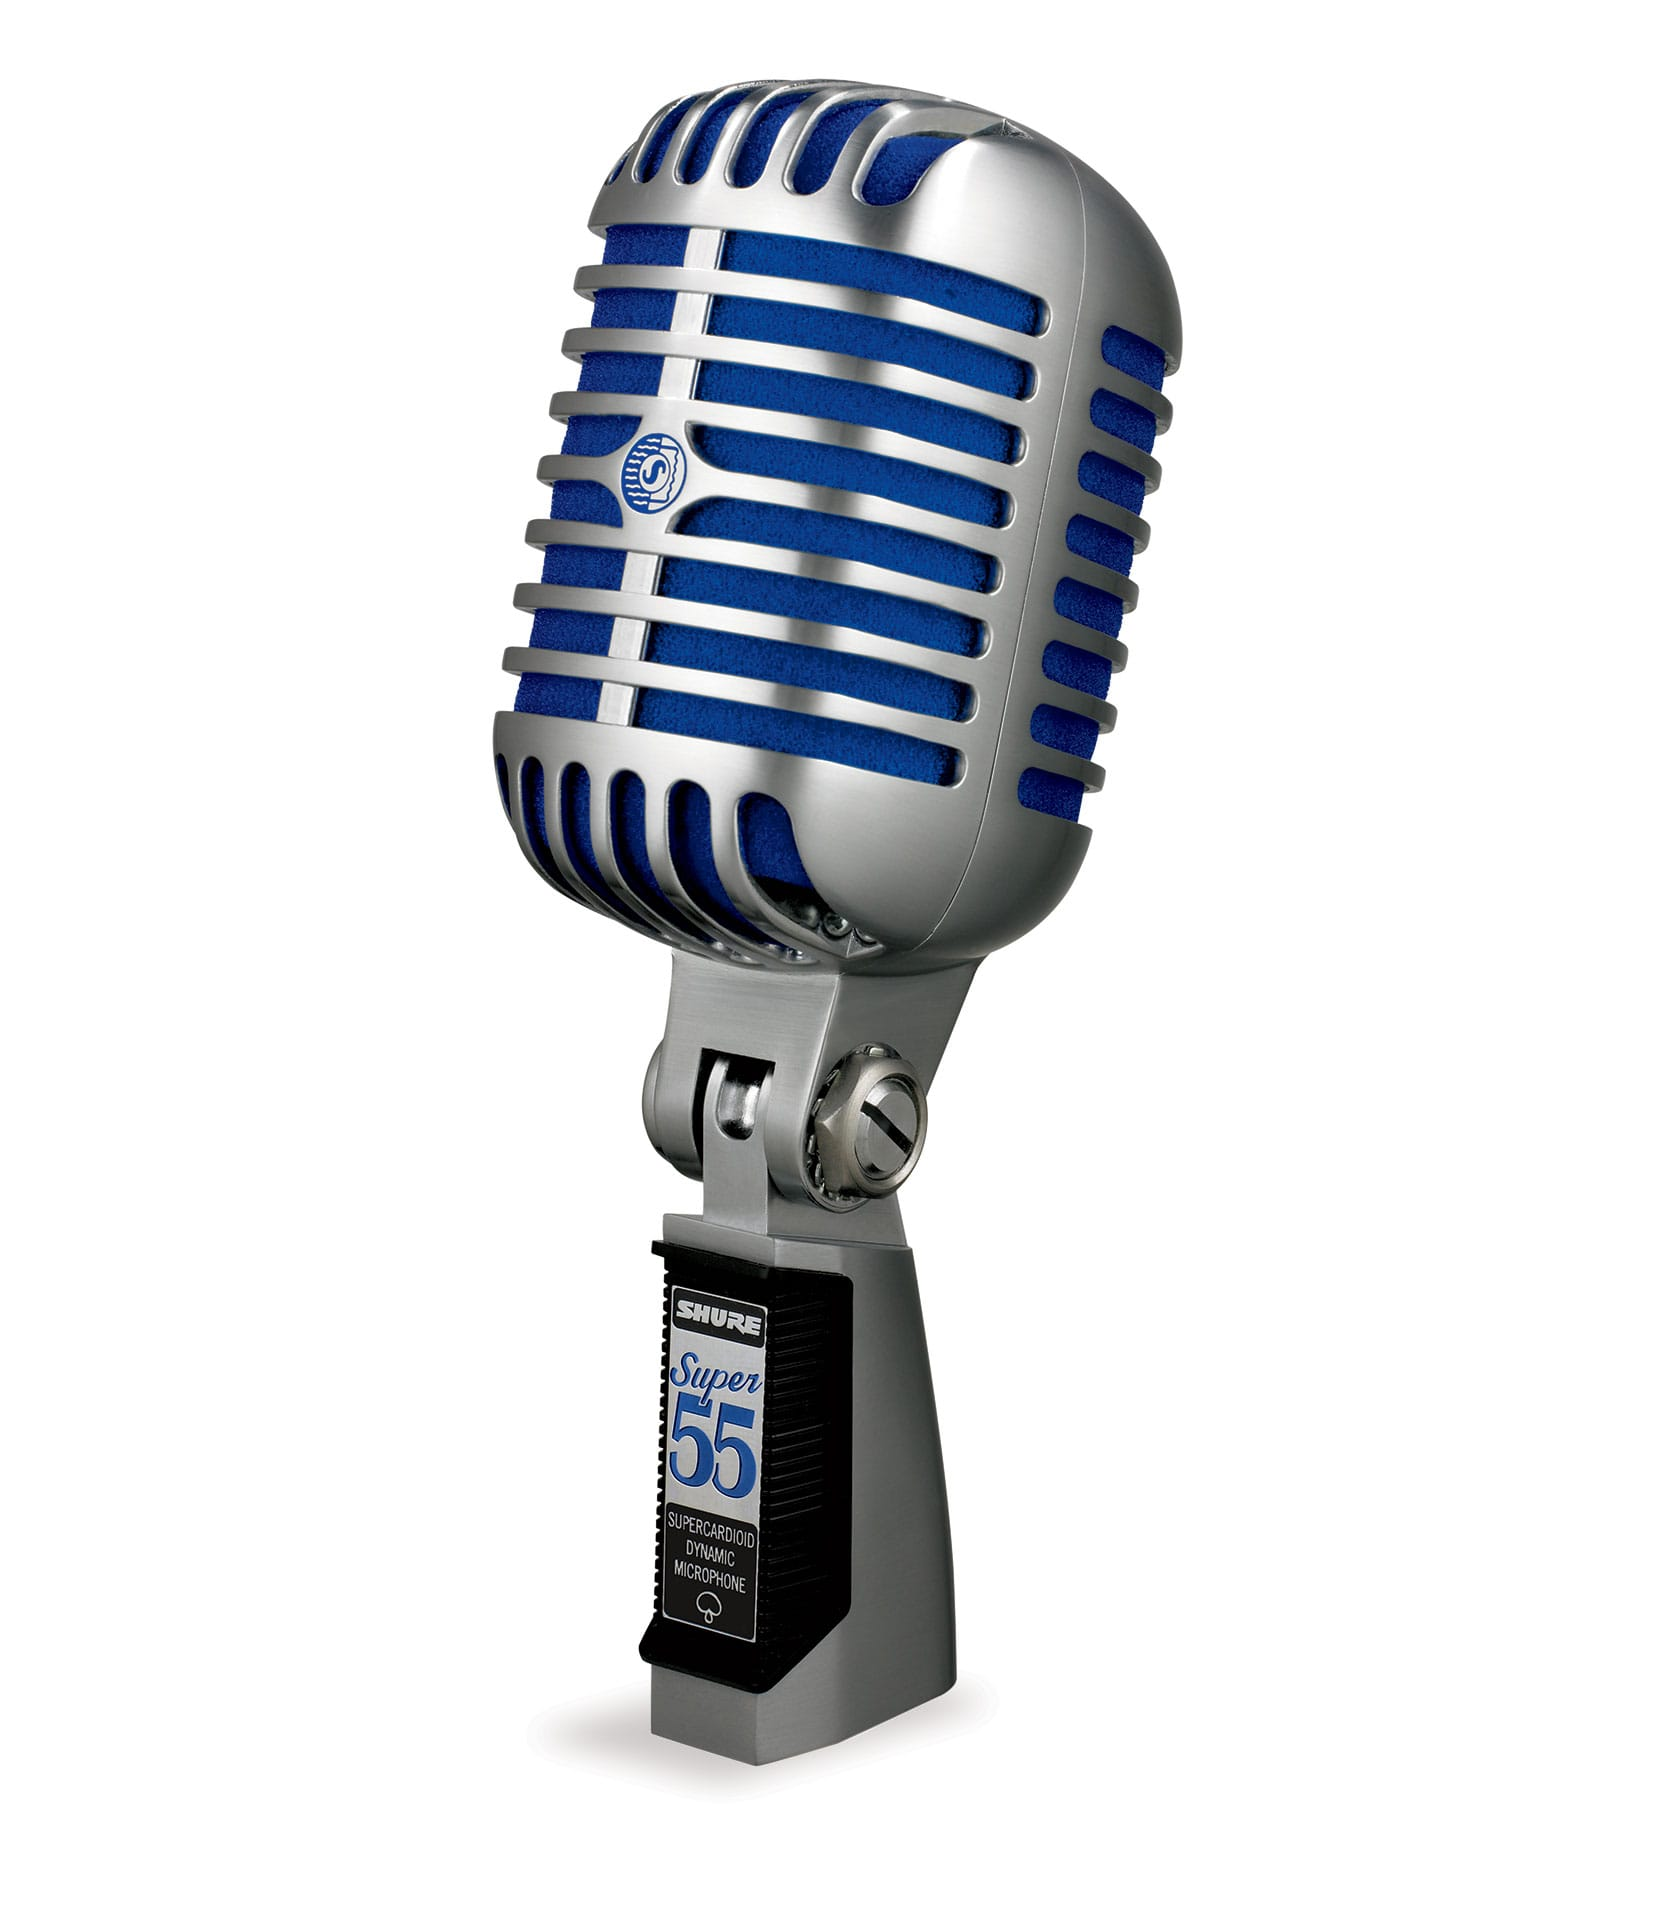 Buy Shure - SUPER 55 Supercardioid Dynamic Deluxe Vocal Mic